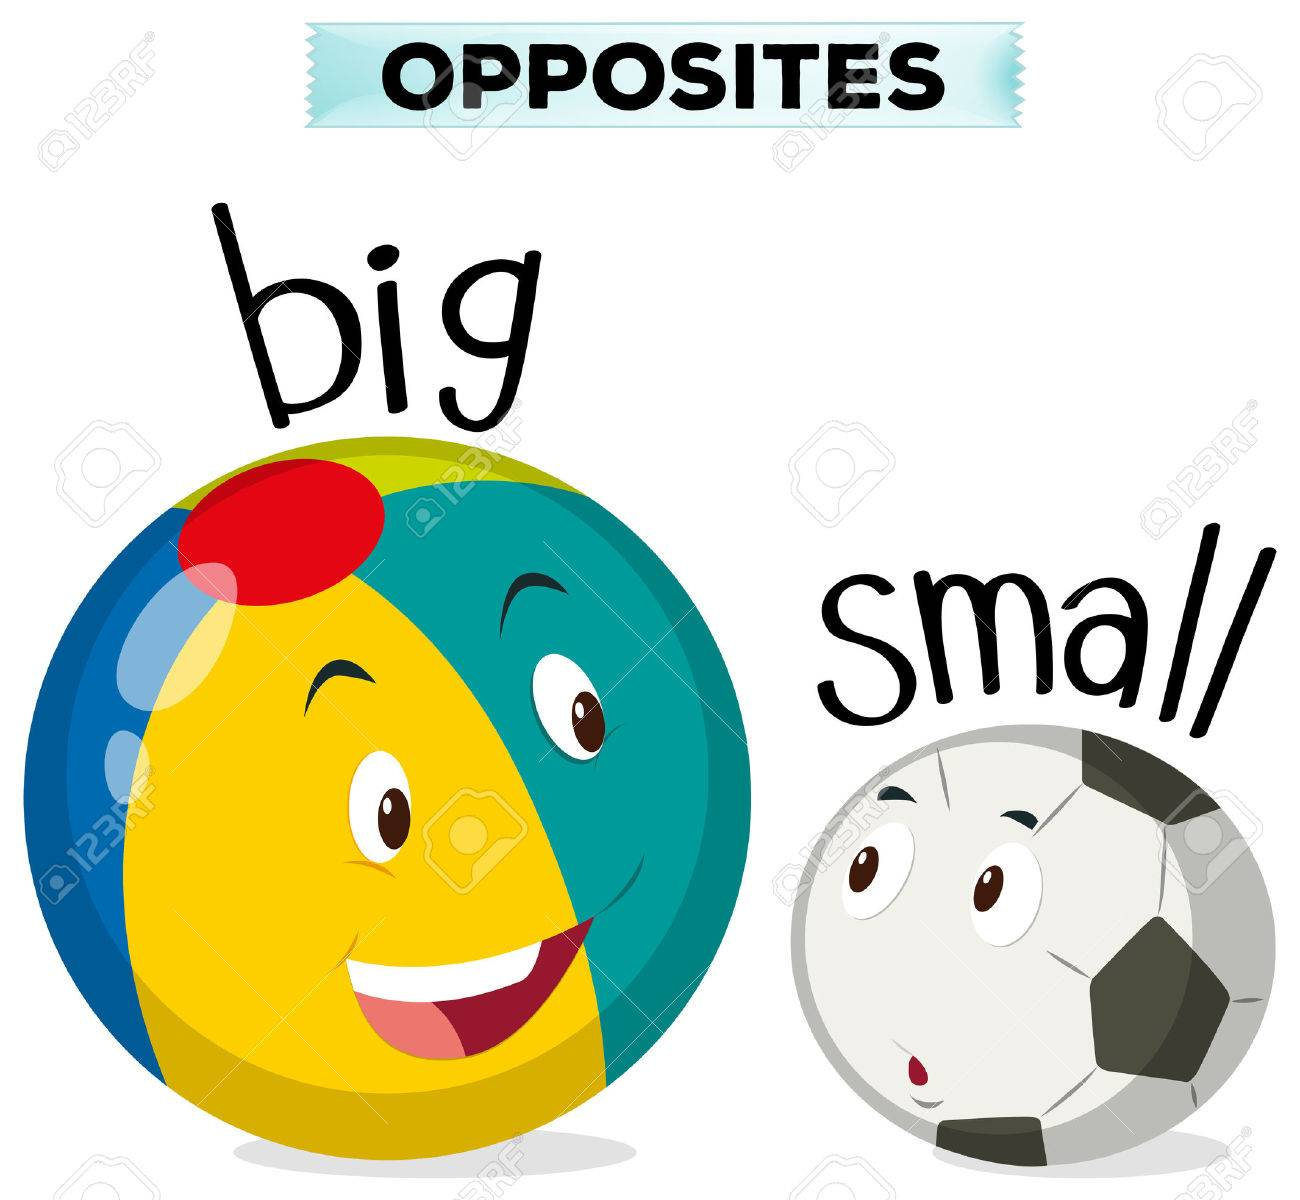 opposite words for big and small illustration royalty free cliparts rh 123rf com bing clip art images bing clip art free download